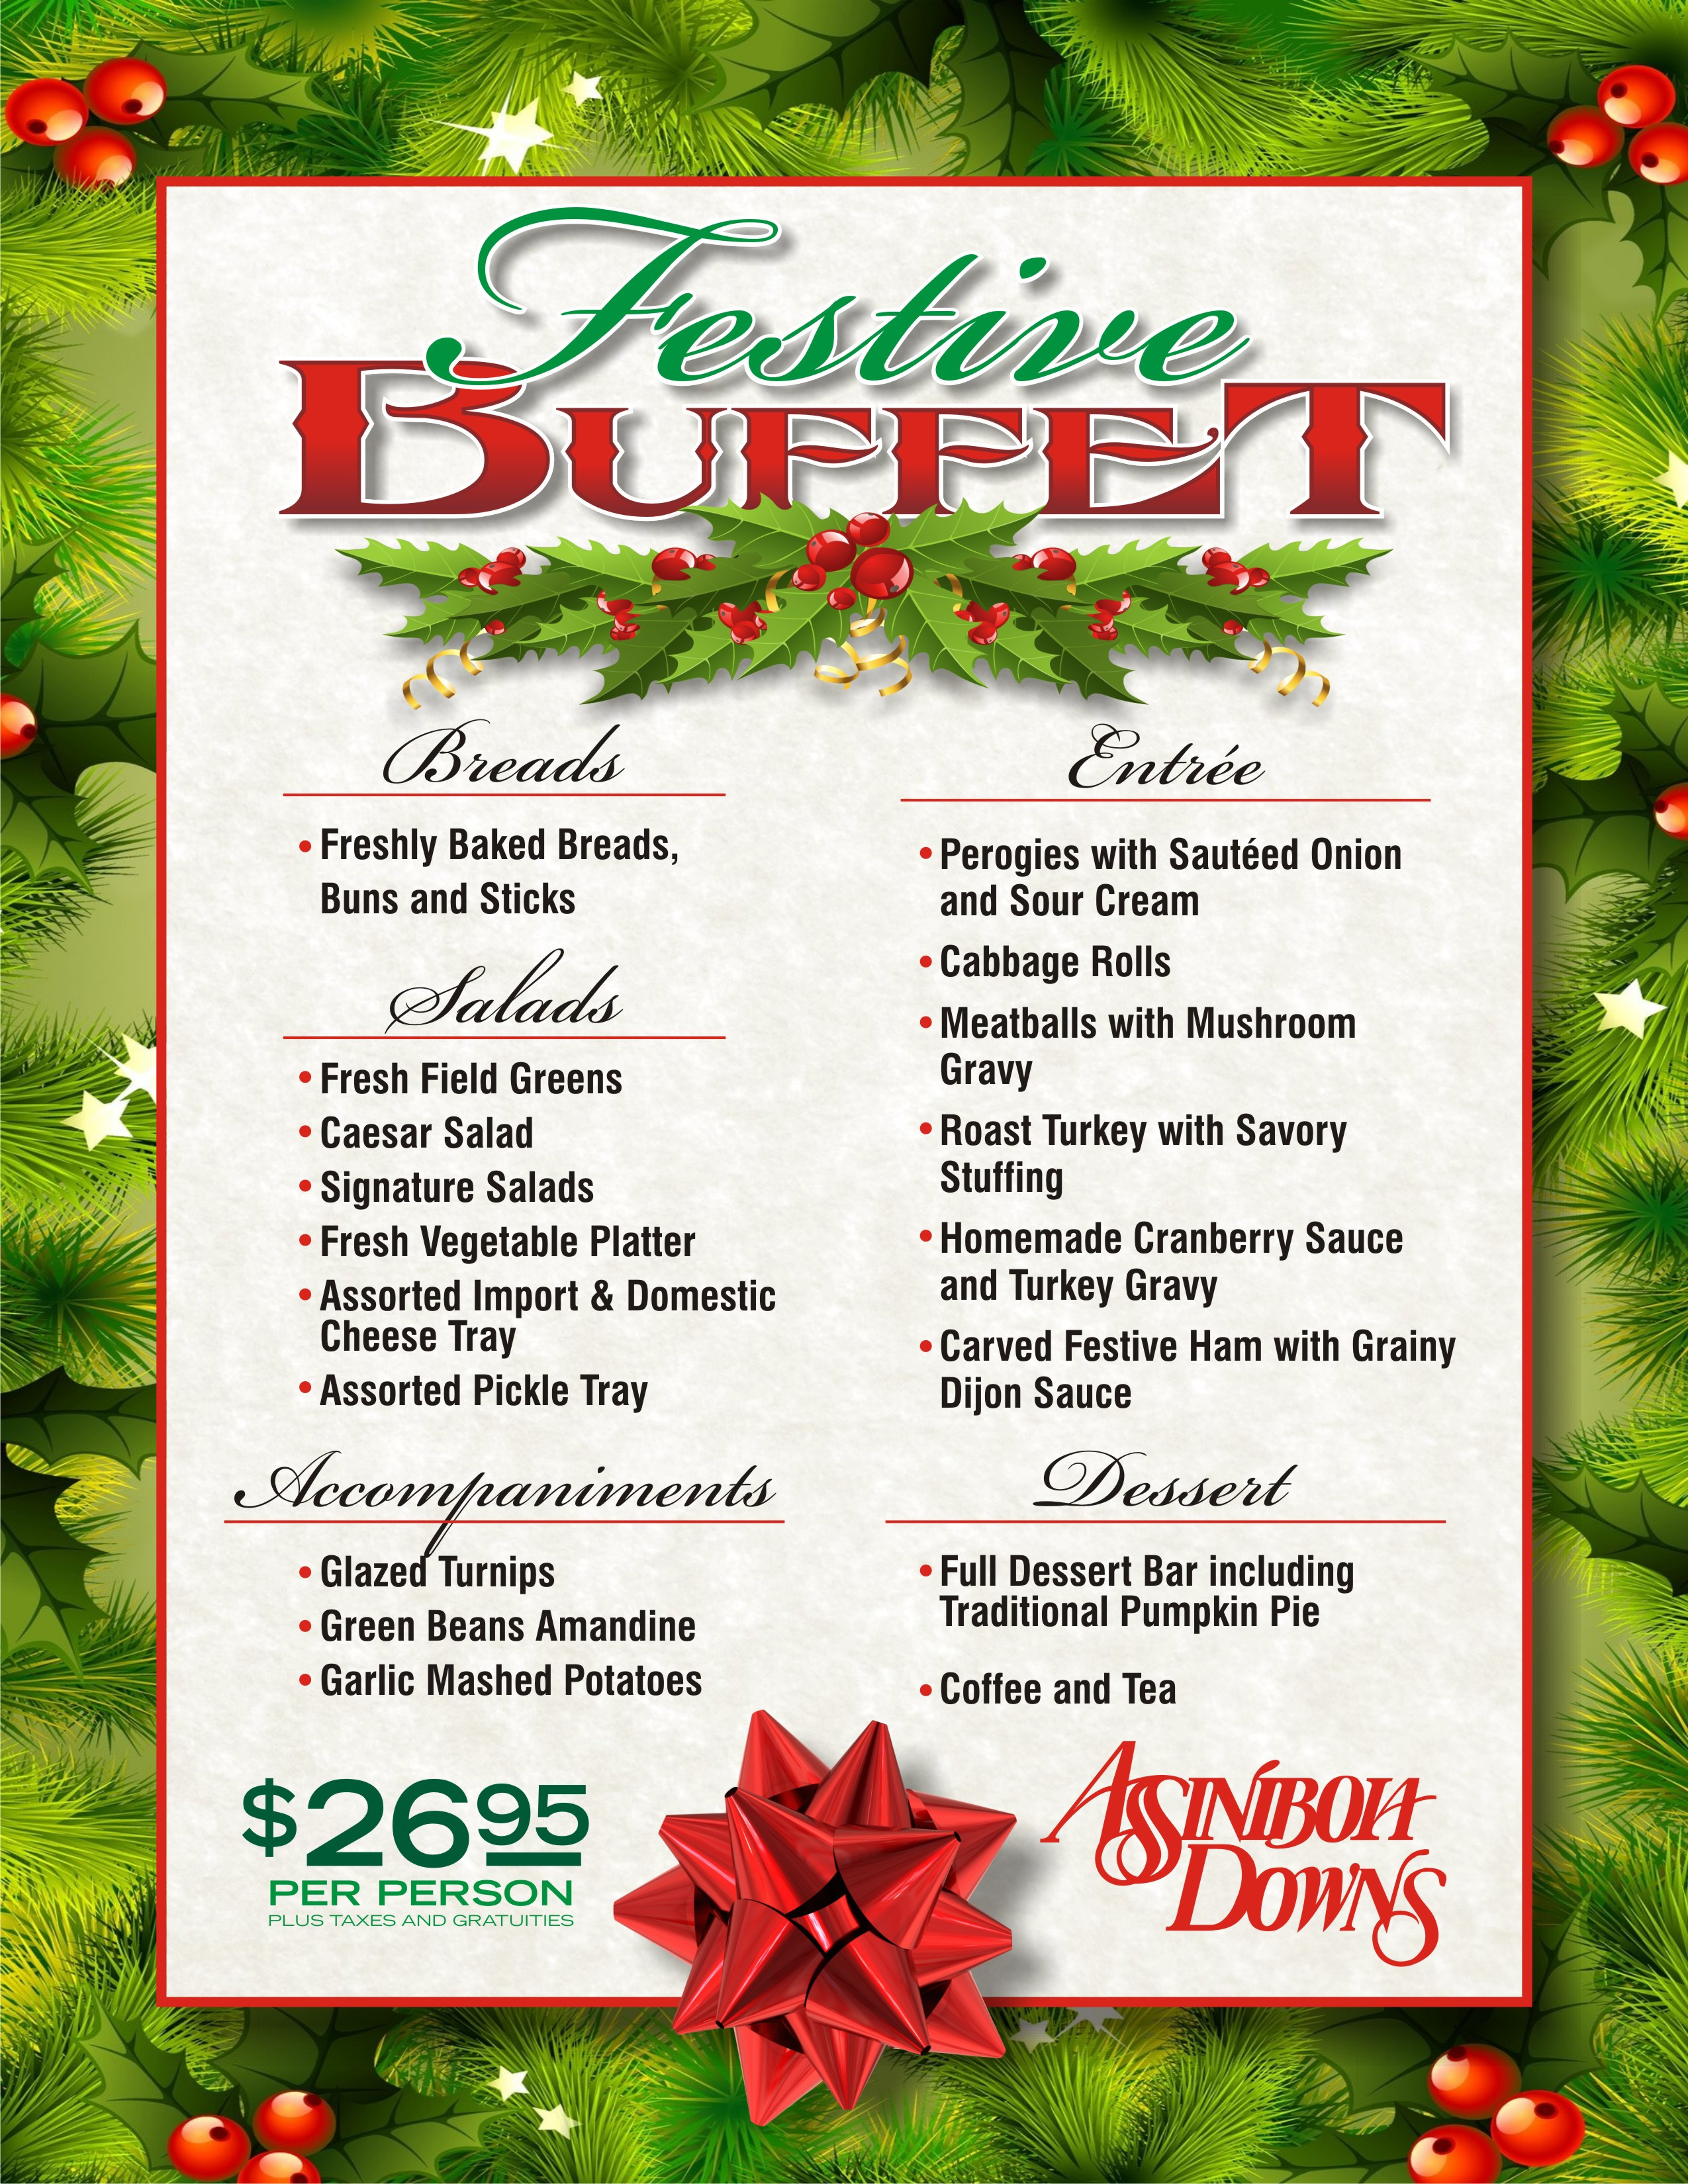 Christmas Party Menu Ideas For Large Groups  Dining Assiniboia Downs Live Racing Simulcast Racing